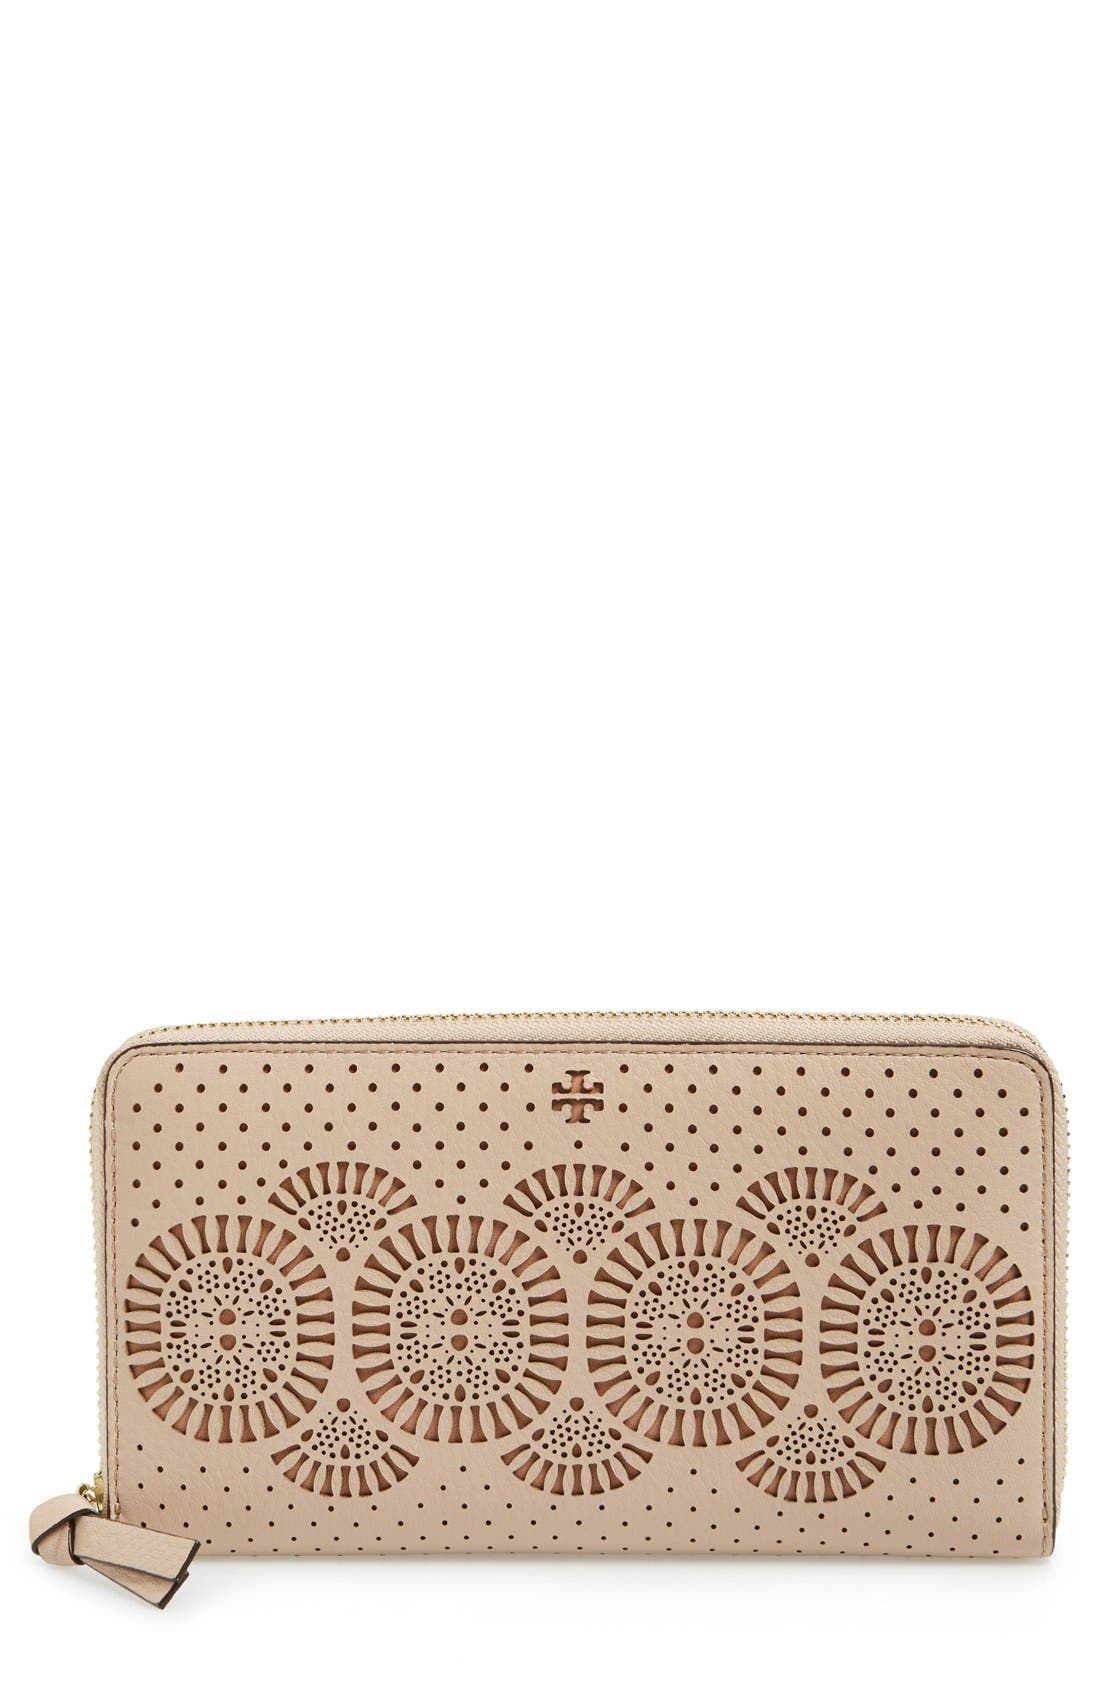 Main Image - Tory Burch 'Zoey' Zip Continental Wallet